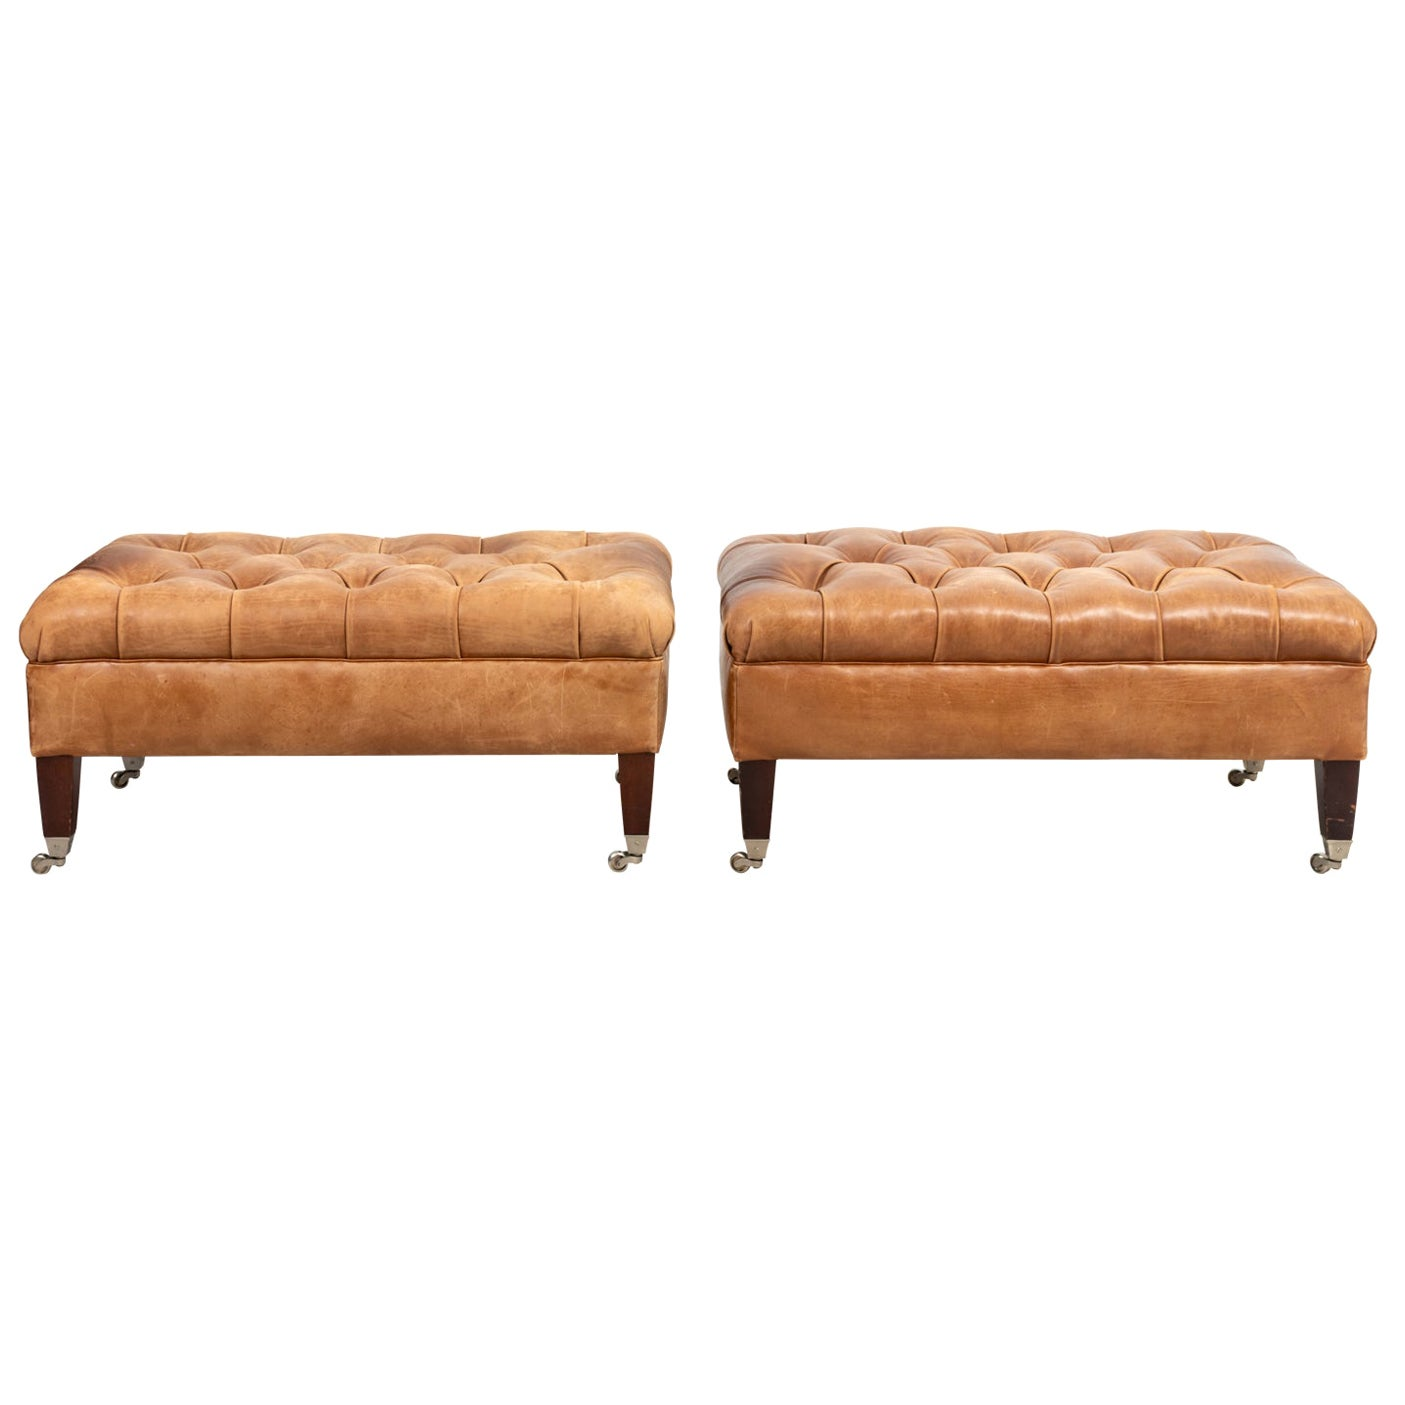 Pair of English Style Leather Tufted Benches